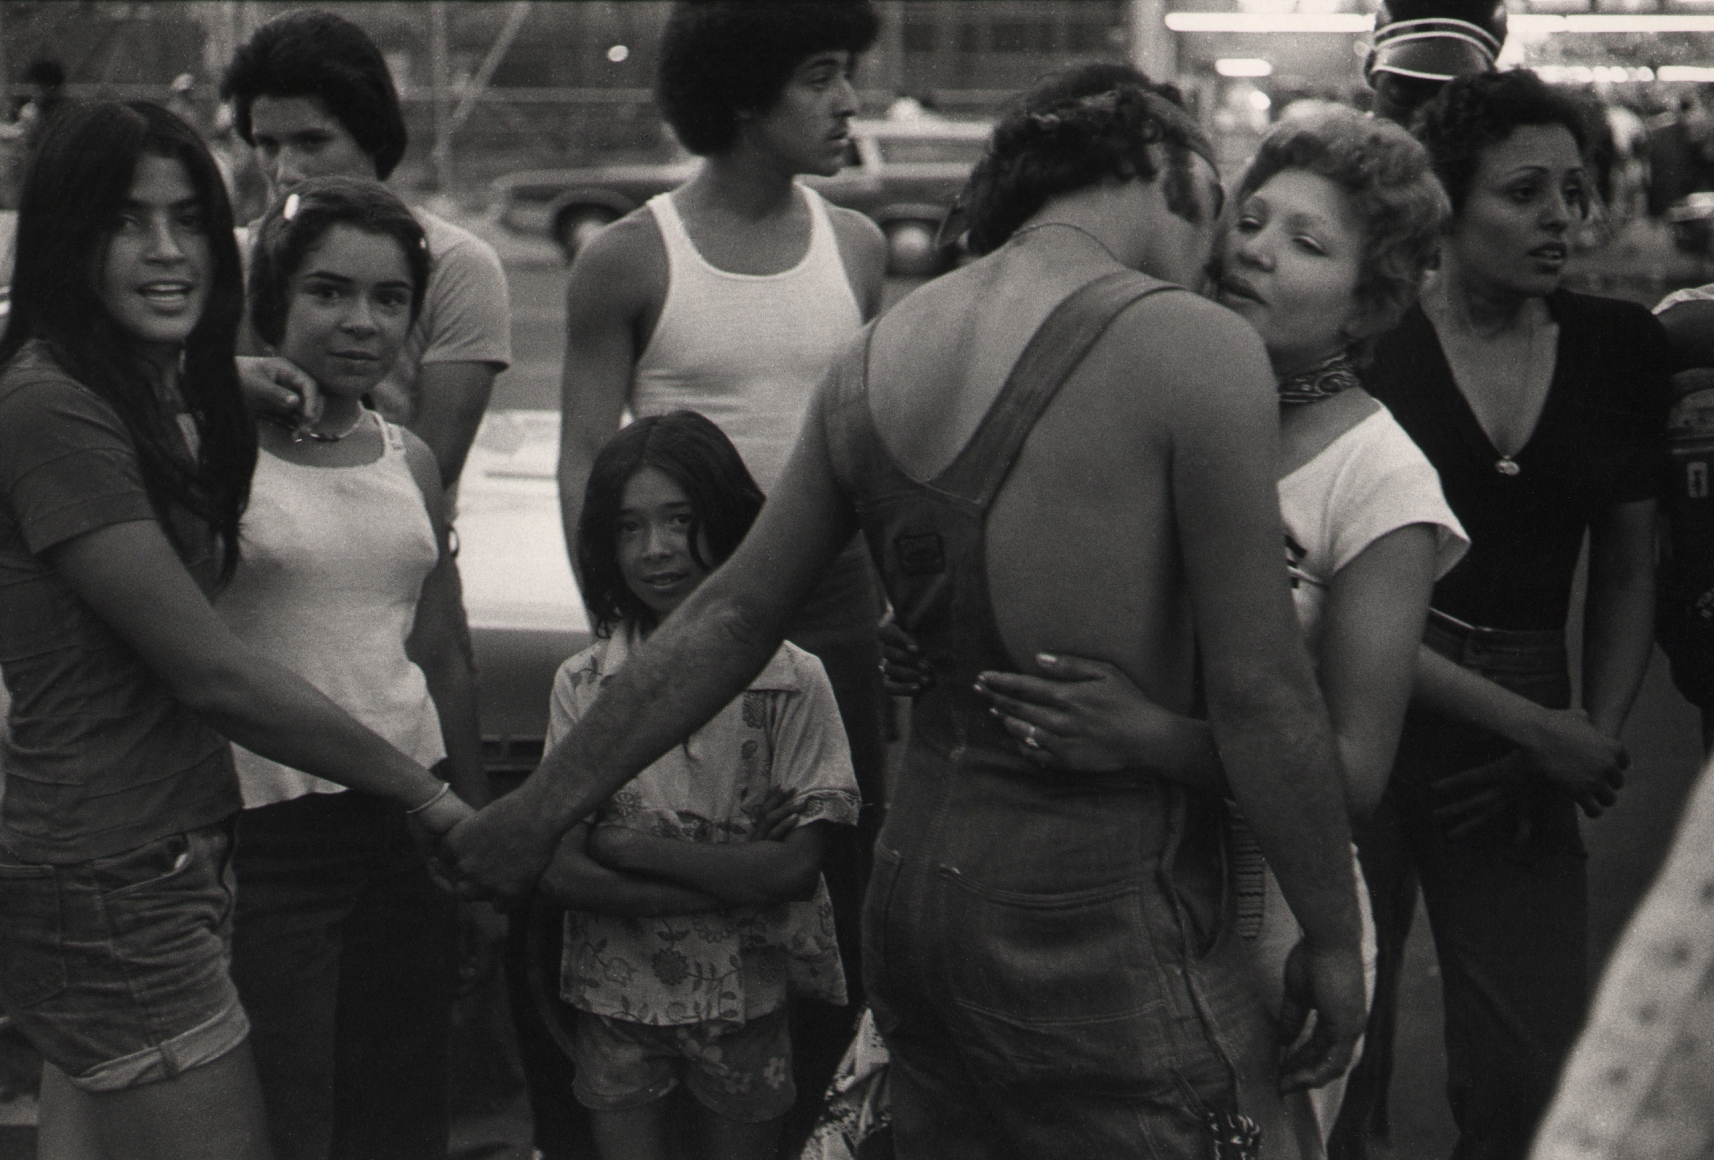 12. Anthony Barboza, Coney Island, NY, 1970s. Crowd of people. Central figure is a man in overalls with back to the camera. He holds one woman's hand while embracing another.